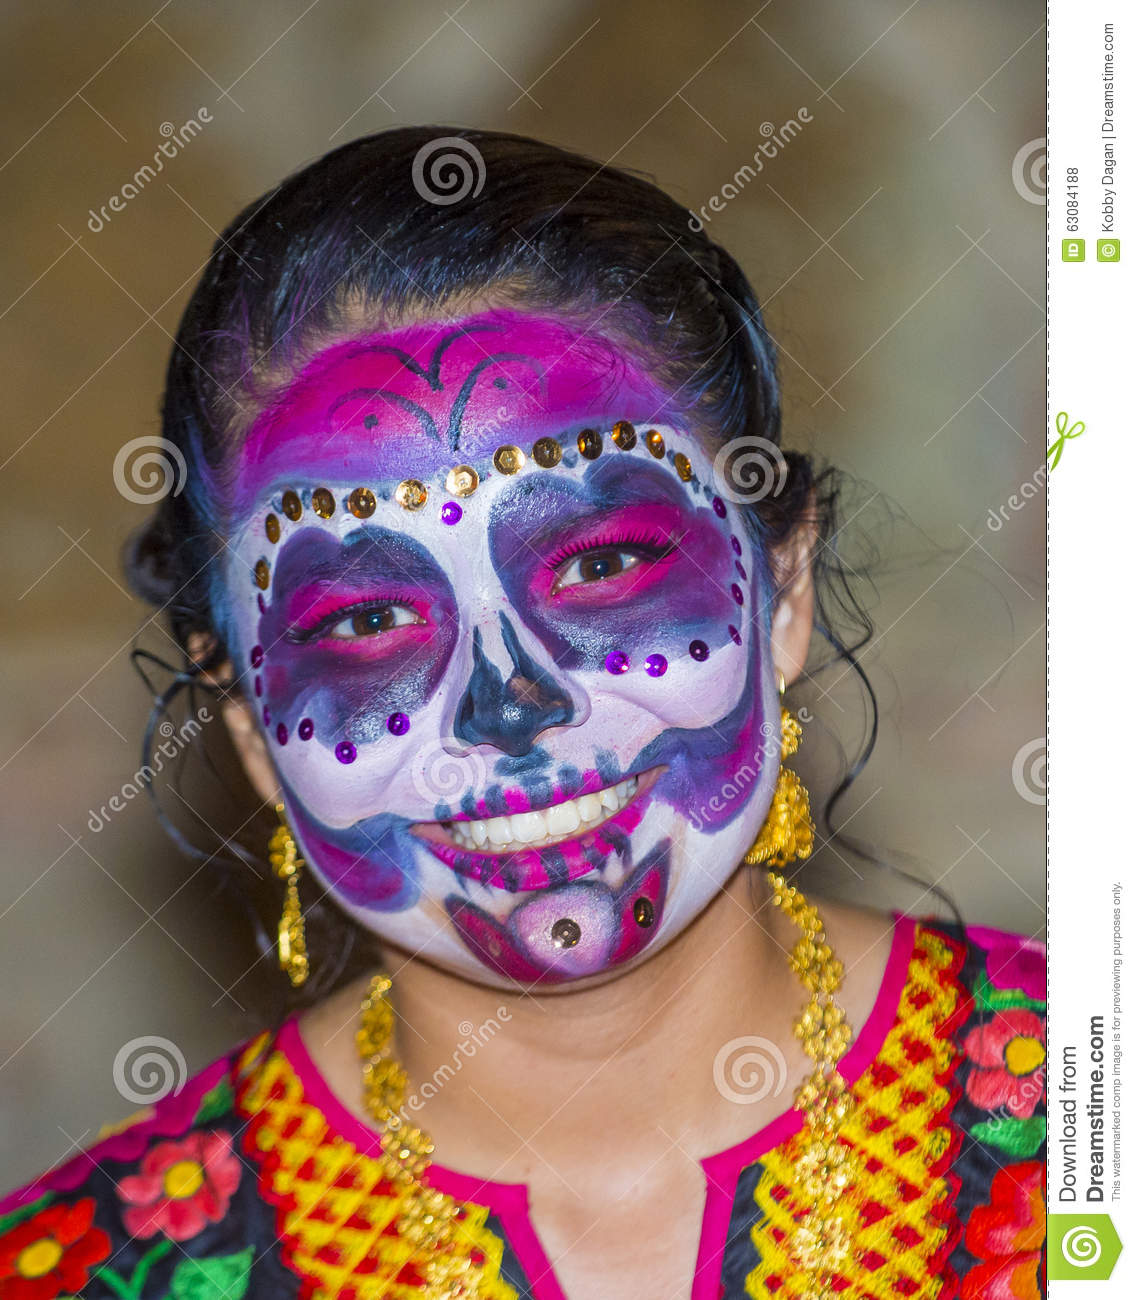 Download Jour des morts photo stock éditorial. Image du visage - 63084188